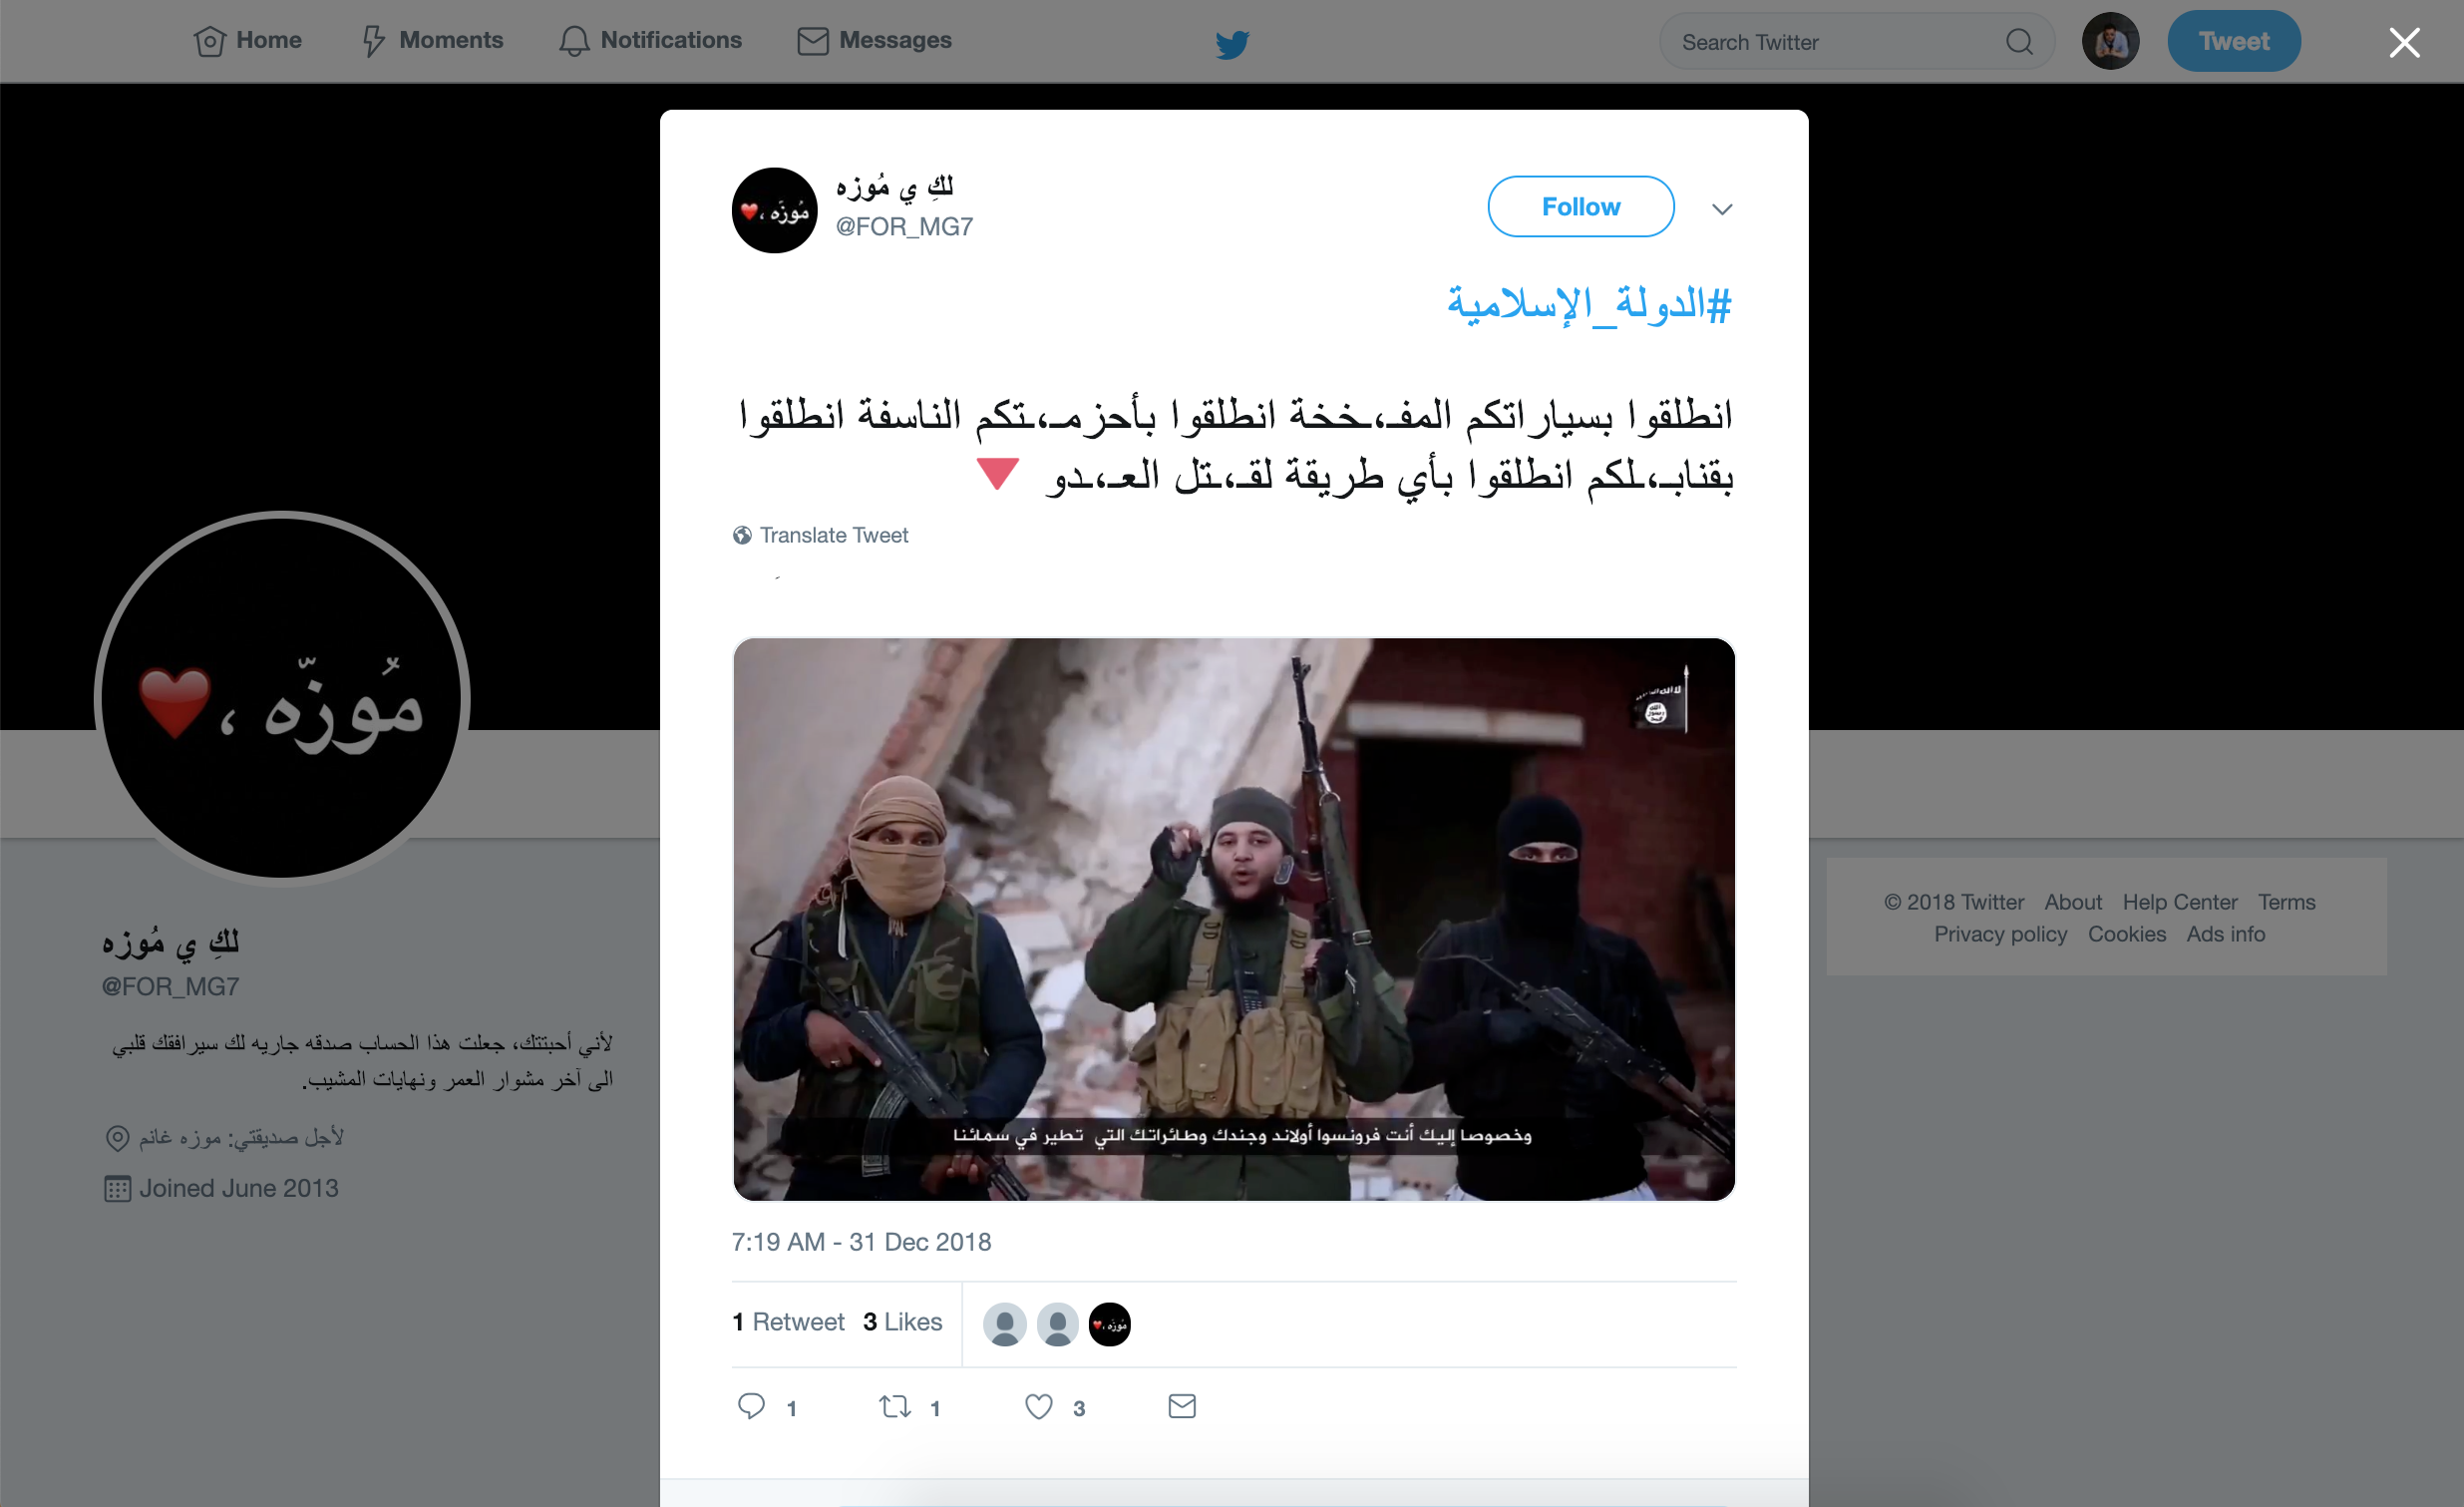 Hackers are spreading Islamic State propaganda by hijacking